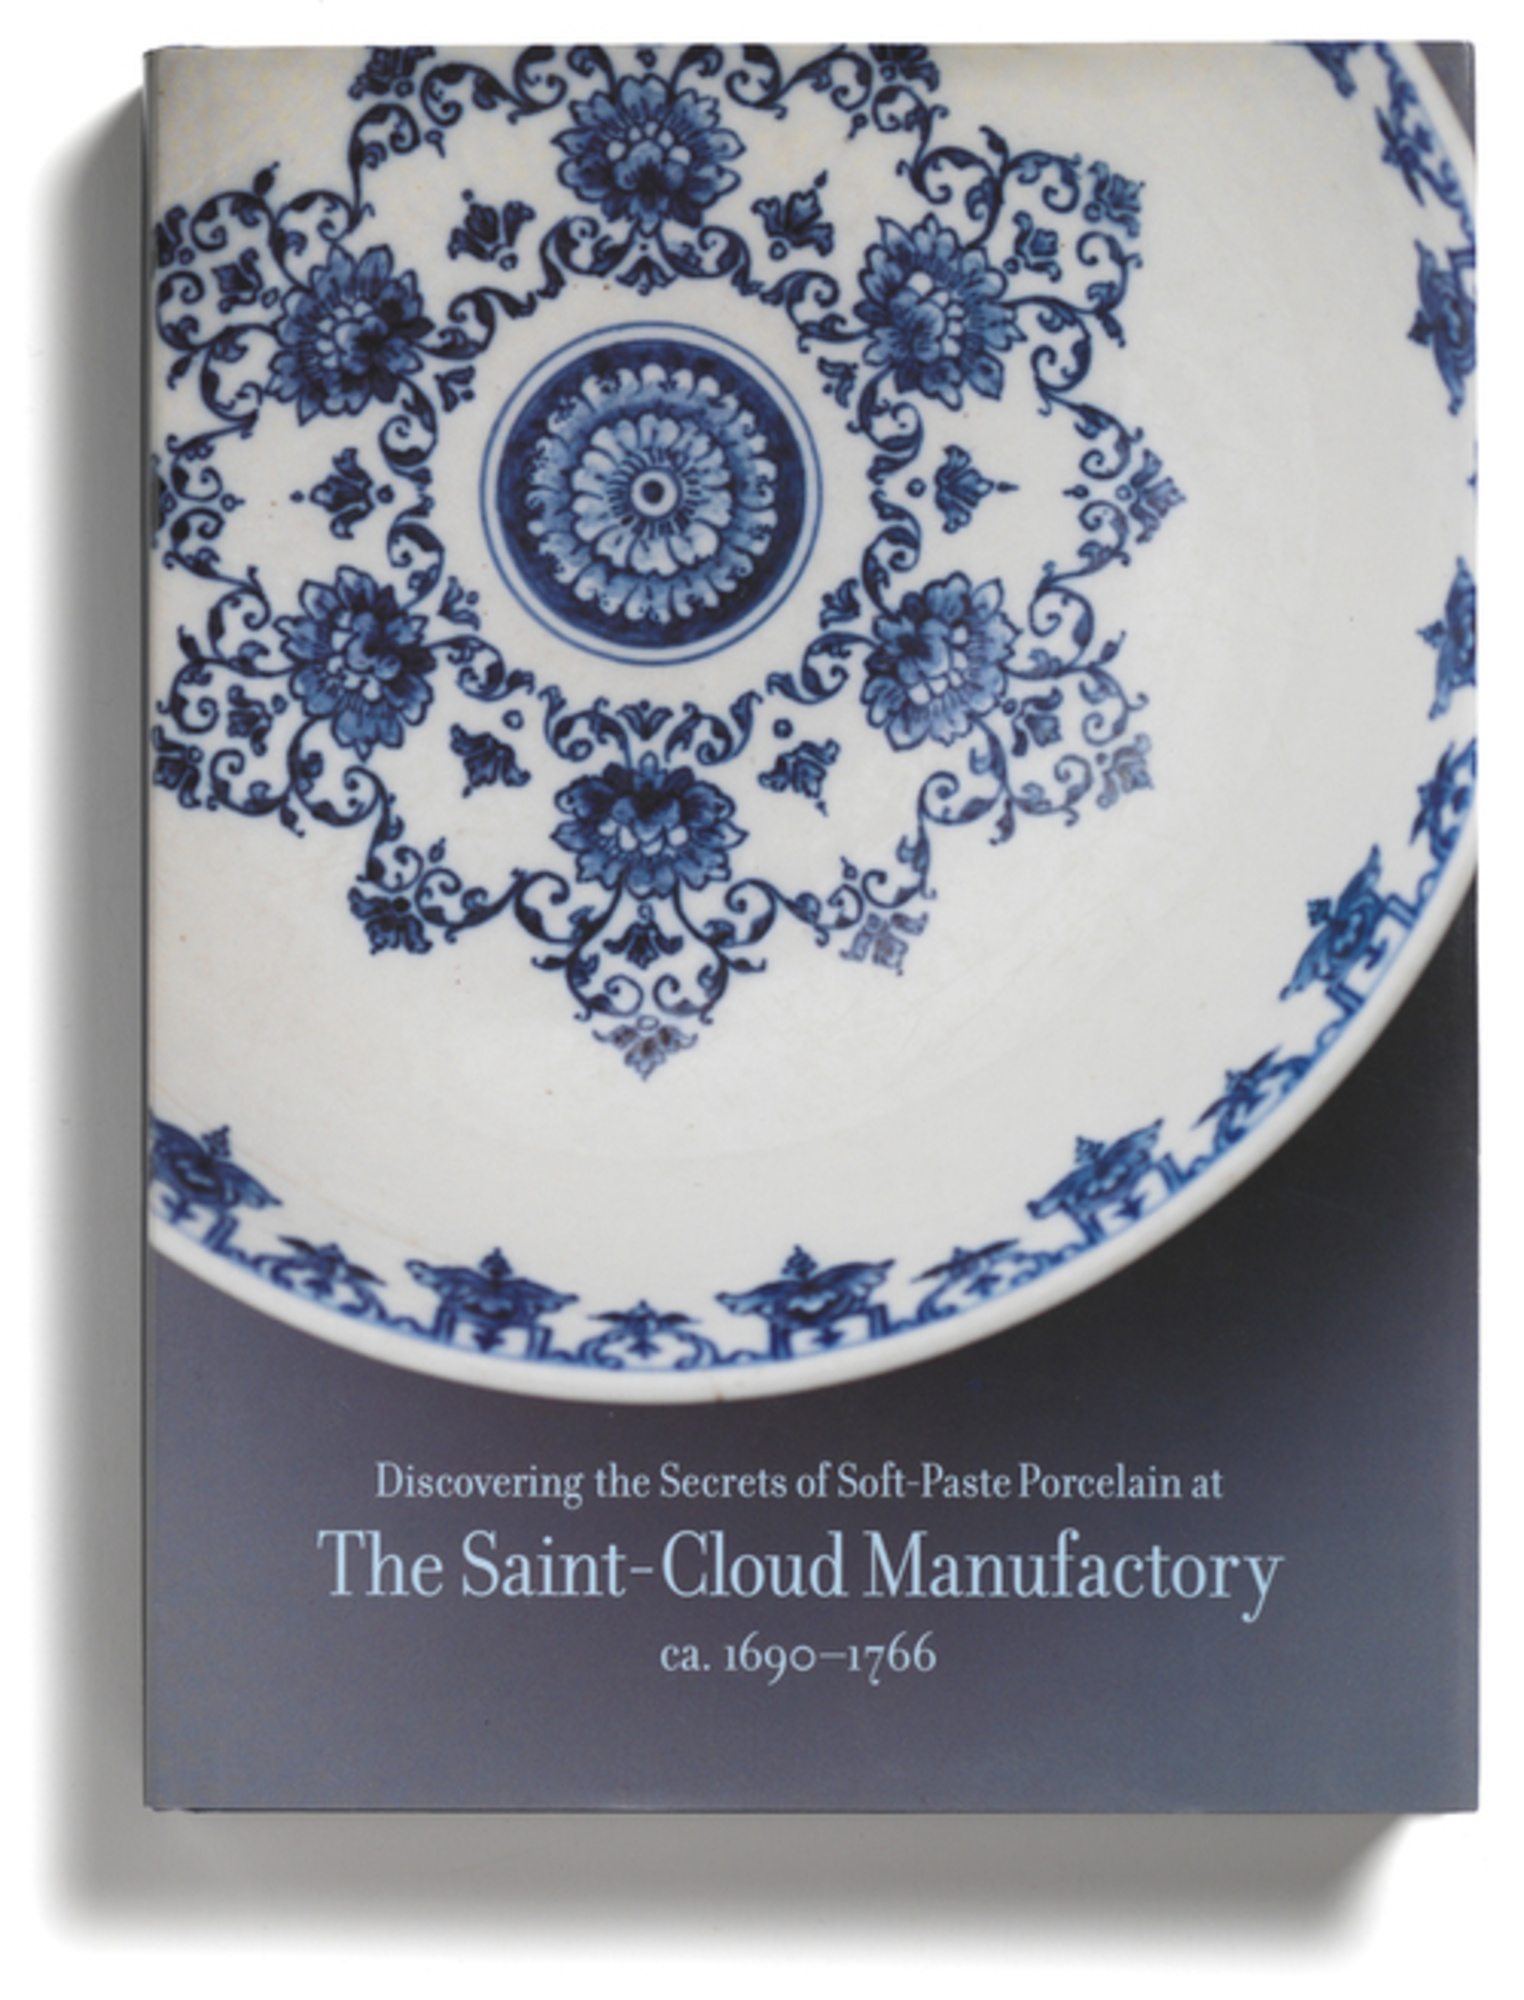 Discovering the Secrets of Soft-Paste Porcelain at the Sa